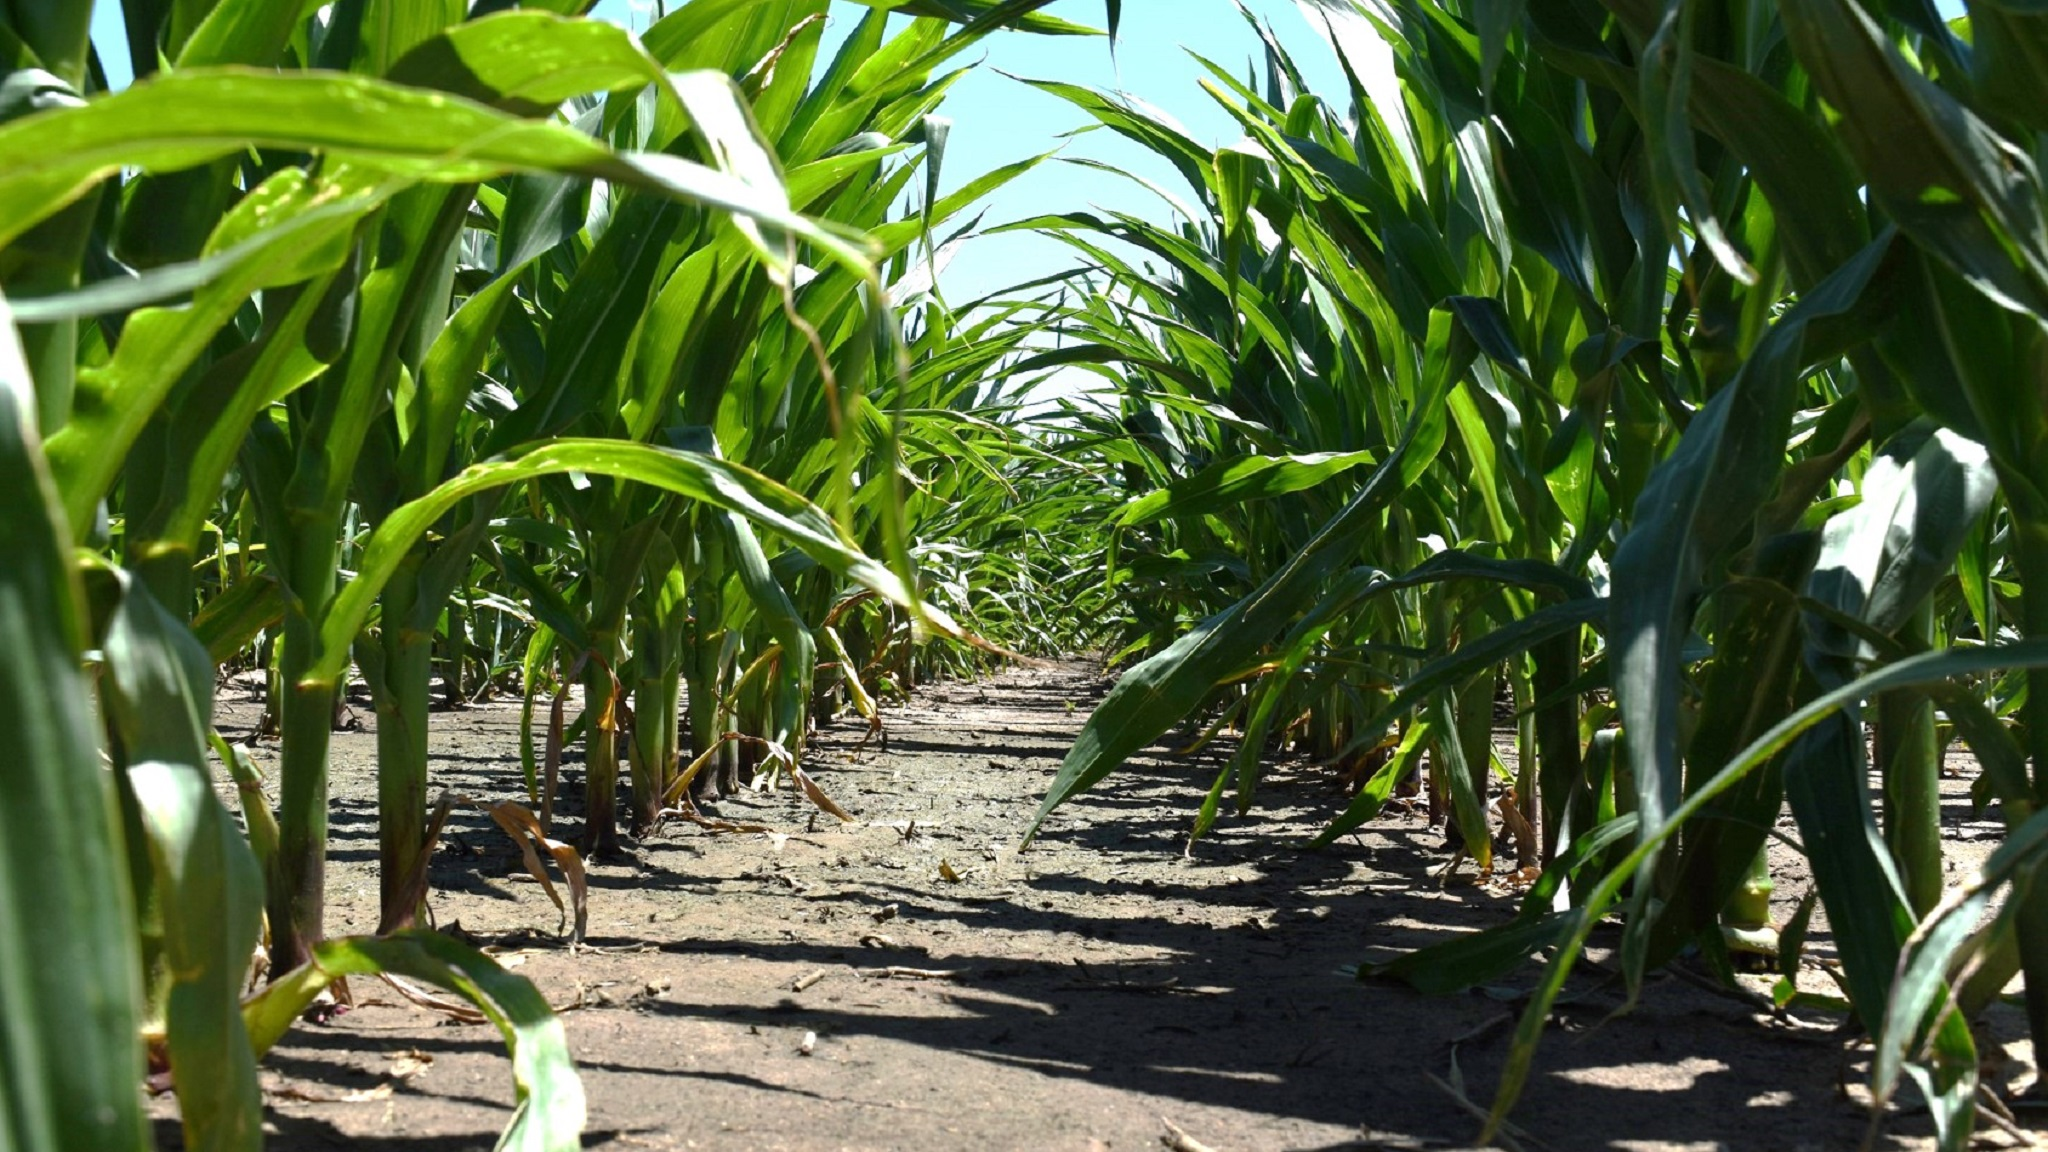 Acuron corn herbicide applied in a split-shot application.